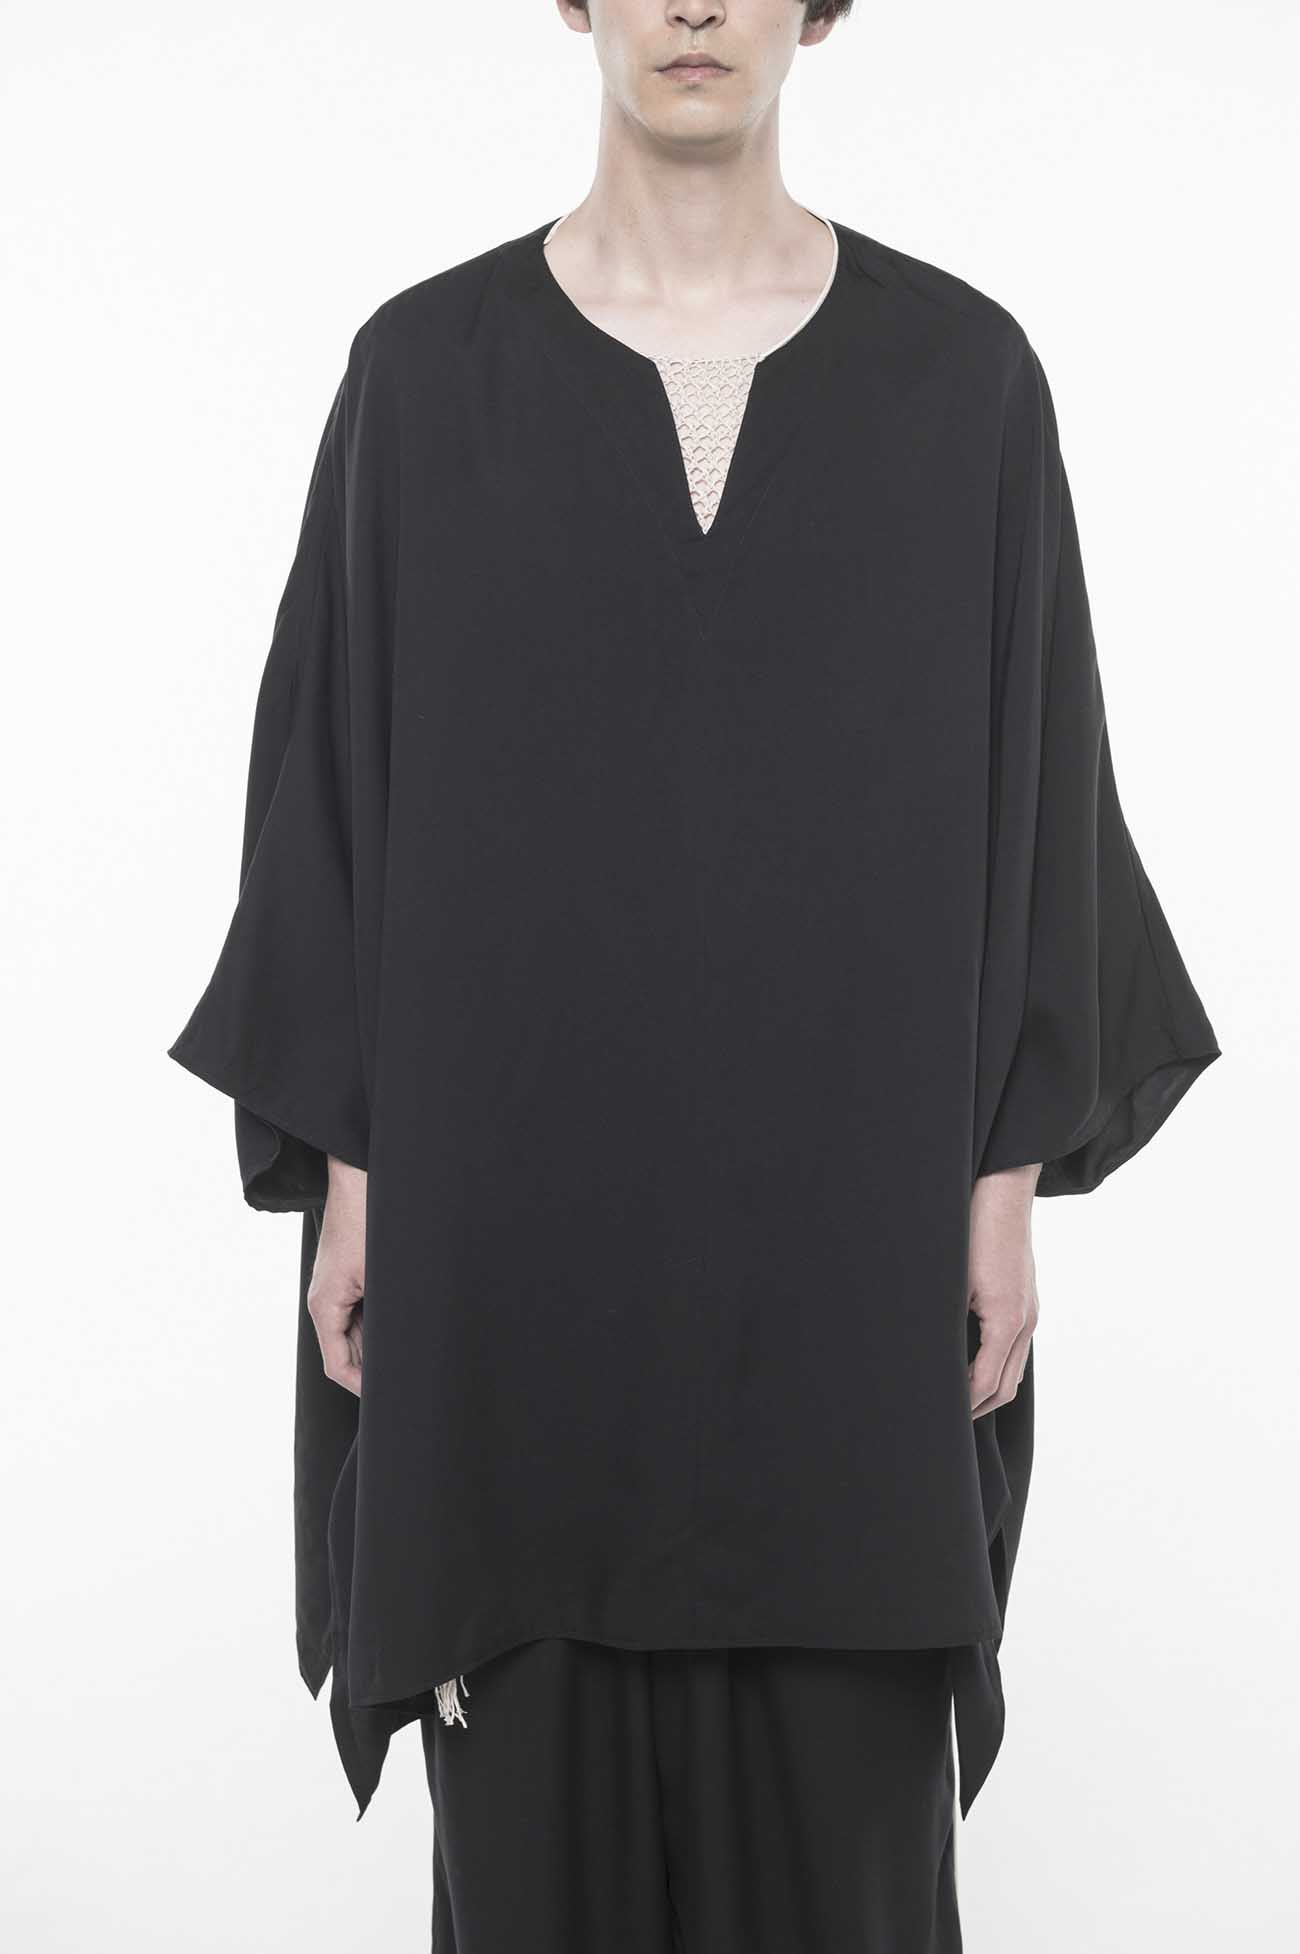 Tencel /Burberry Piping Vslit Tunic Poncho Pullover